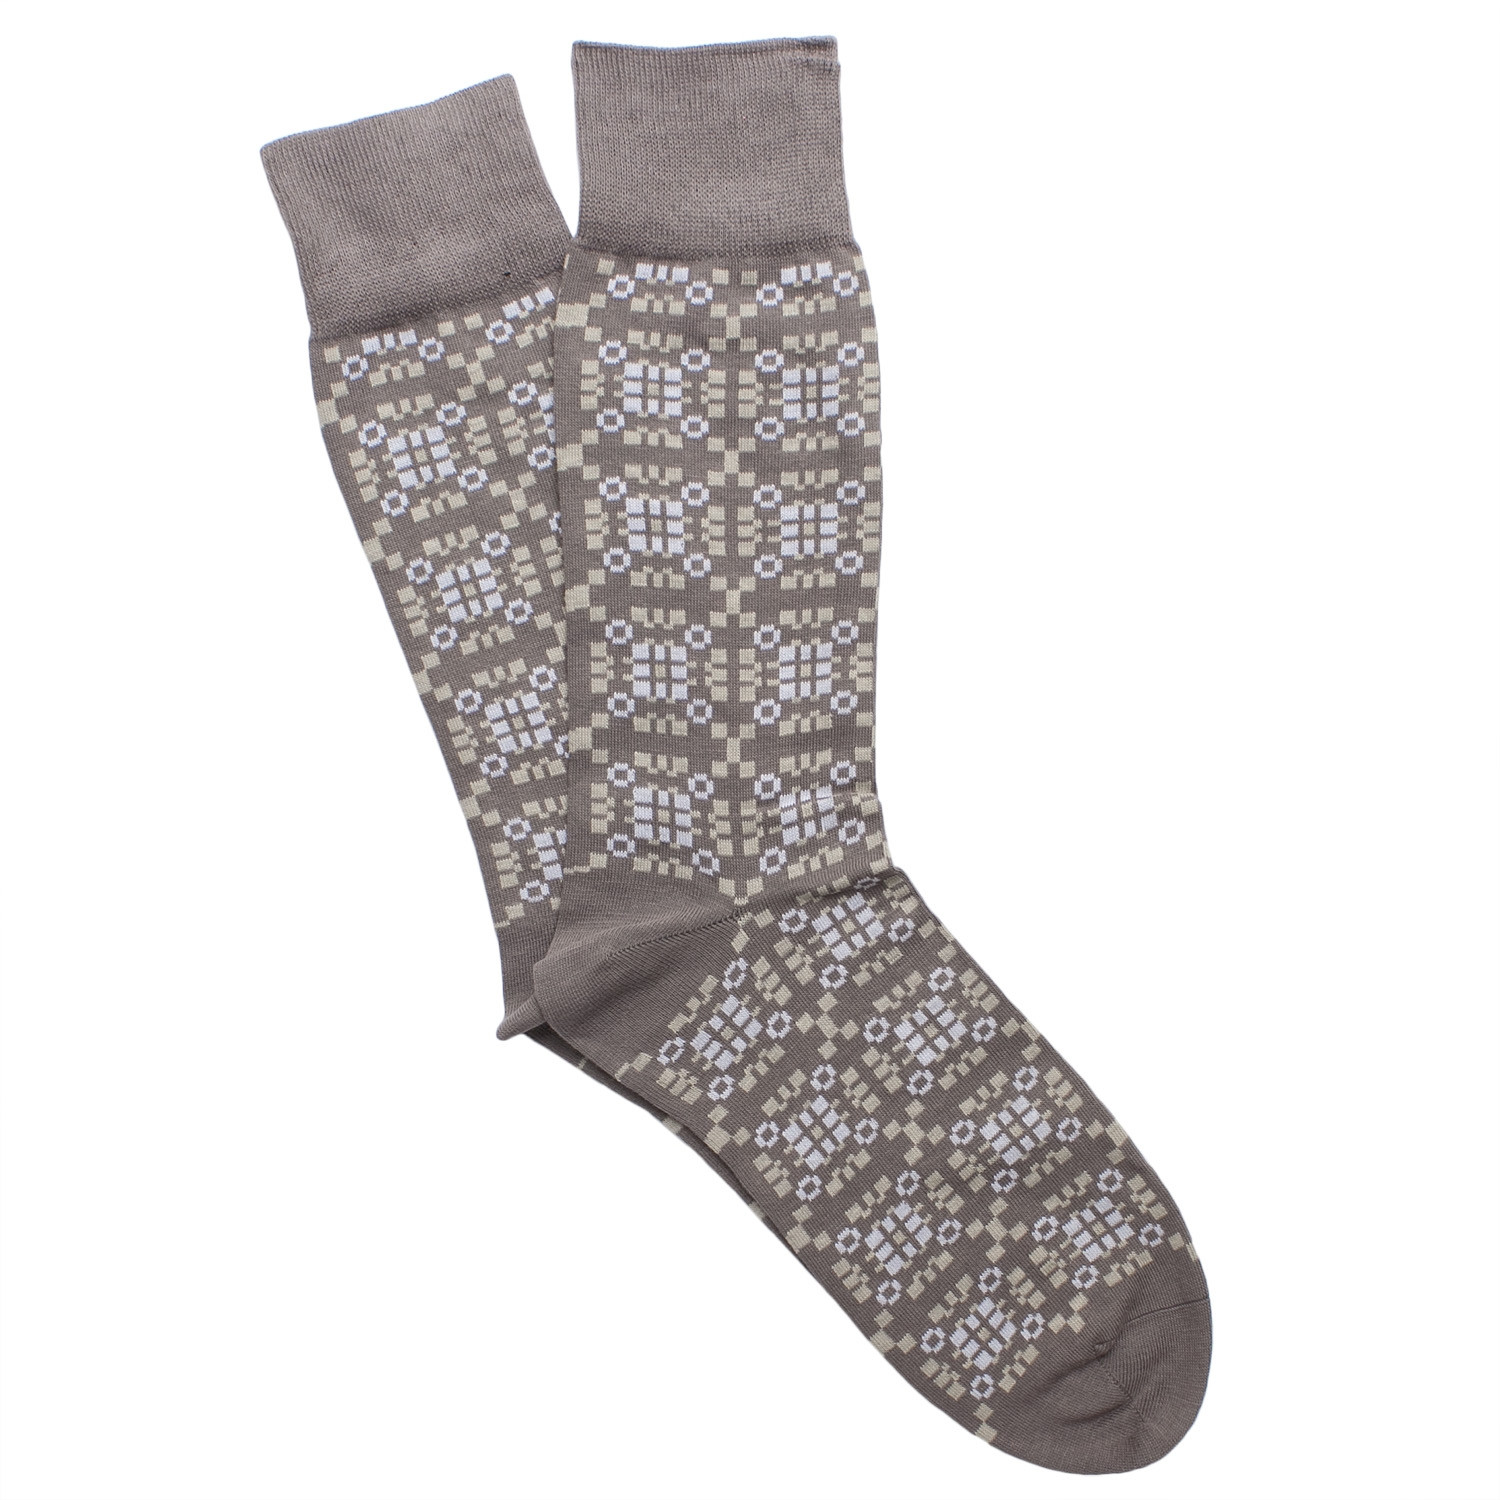 Tapestri silver cotton blend socks